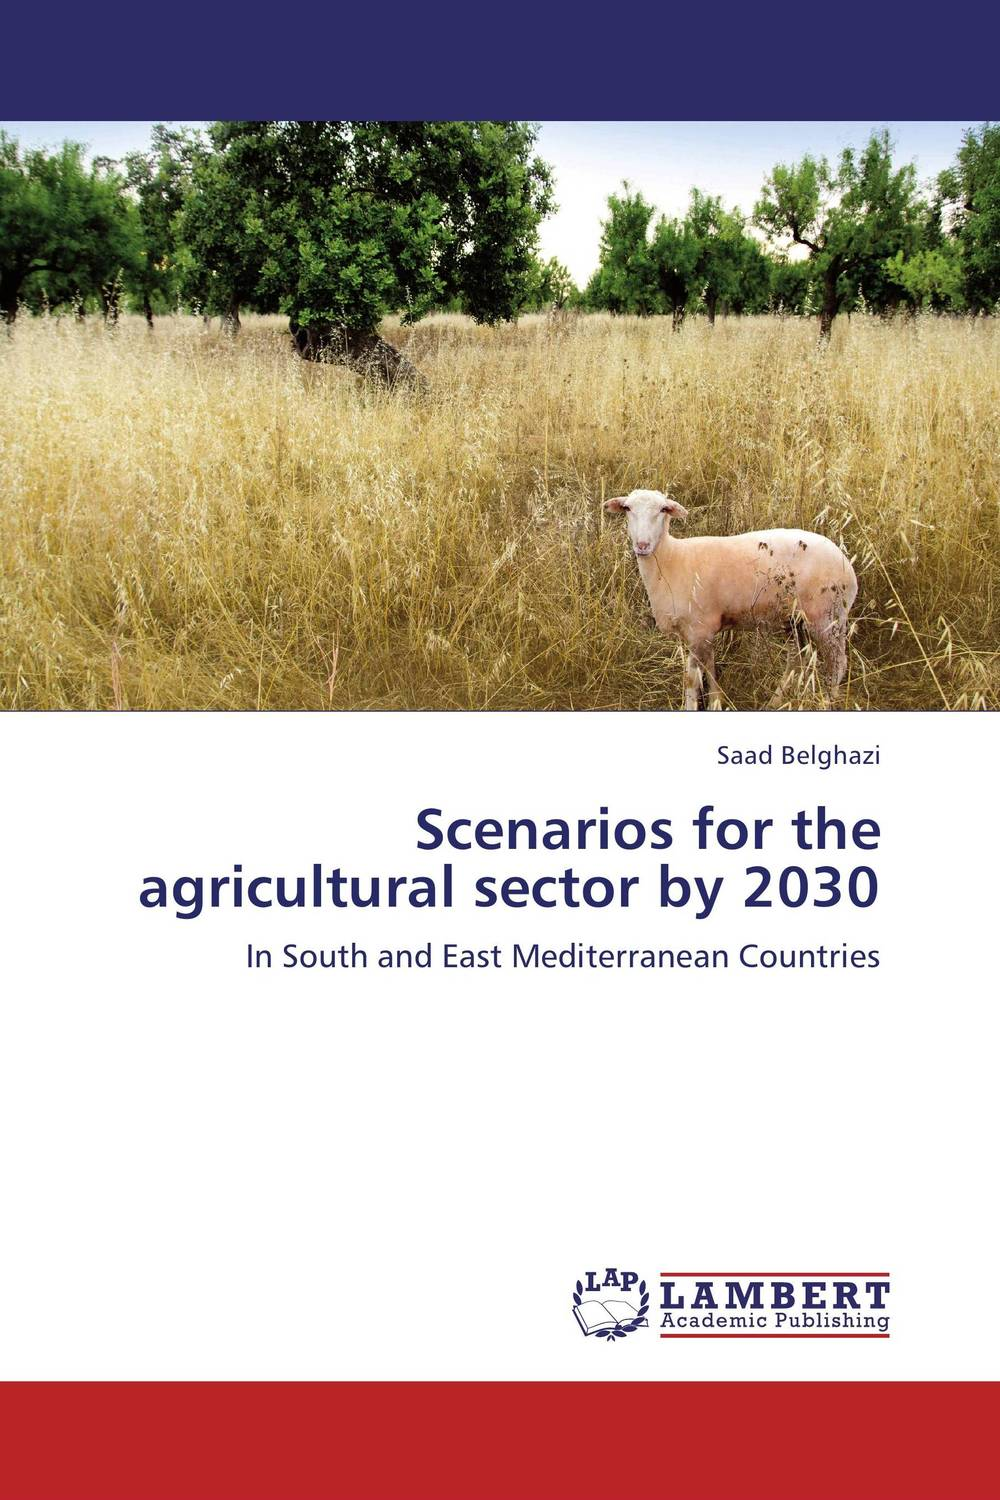 Scenarios for the agricultural sector by 2030 cold storage accessibility and agricultural production by smallholders